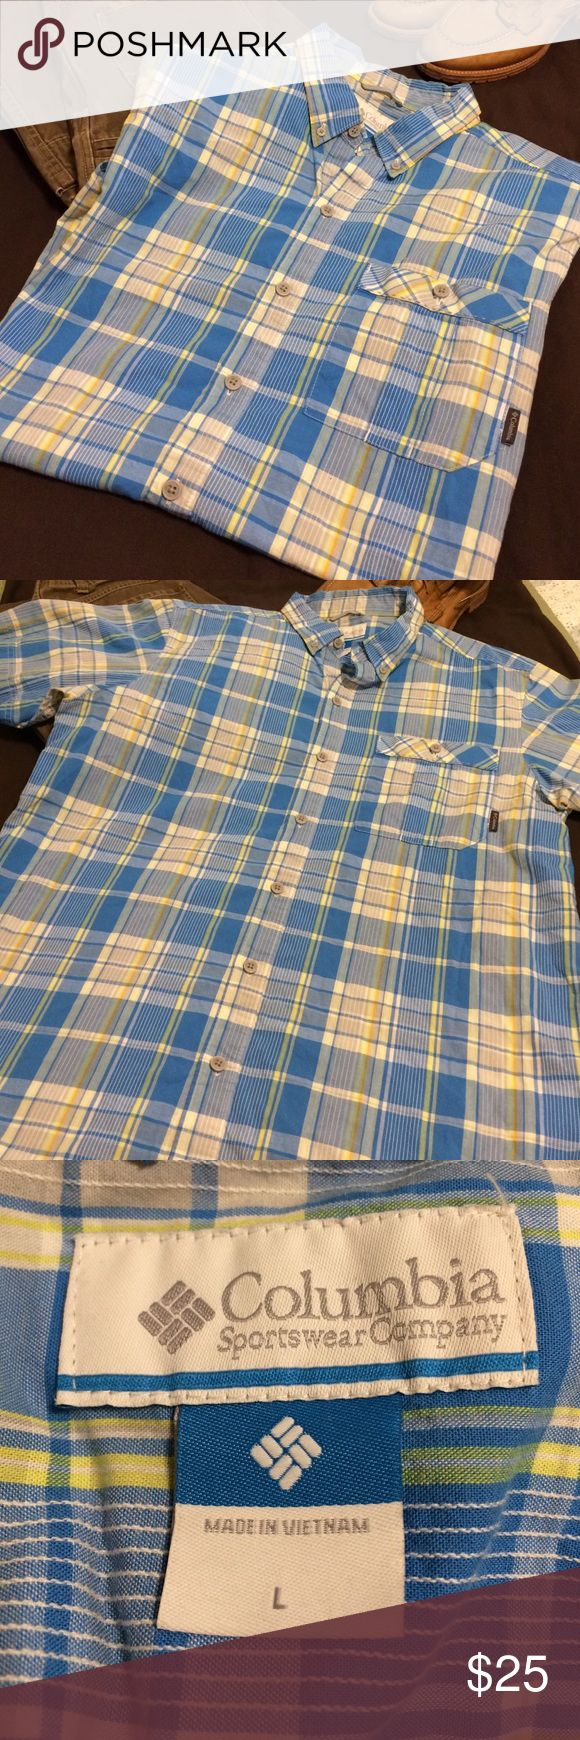 Columbia Sportswear Plaid Button Down Shirt Attractive and functional Columbia Sportswear button down short-sleeved shirt. Size Large. Great blue & white color with a bit of light orange & yellow to accent. True to Columbia Sportswear it is in great shape with a lot more wear in it. Columbia Shirts Casual Button Down Shirts